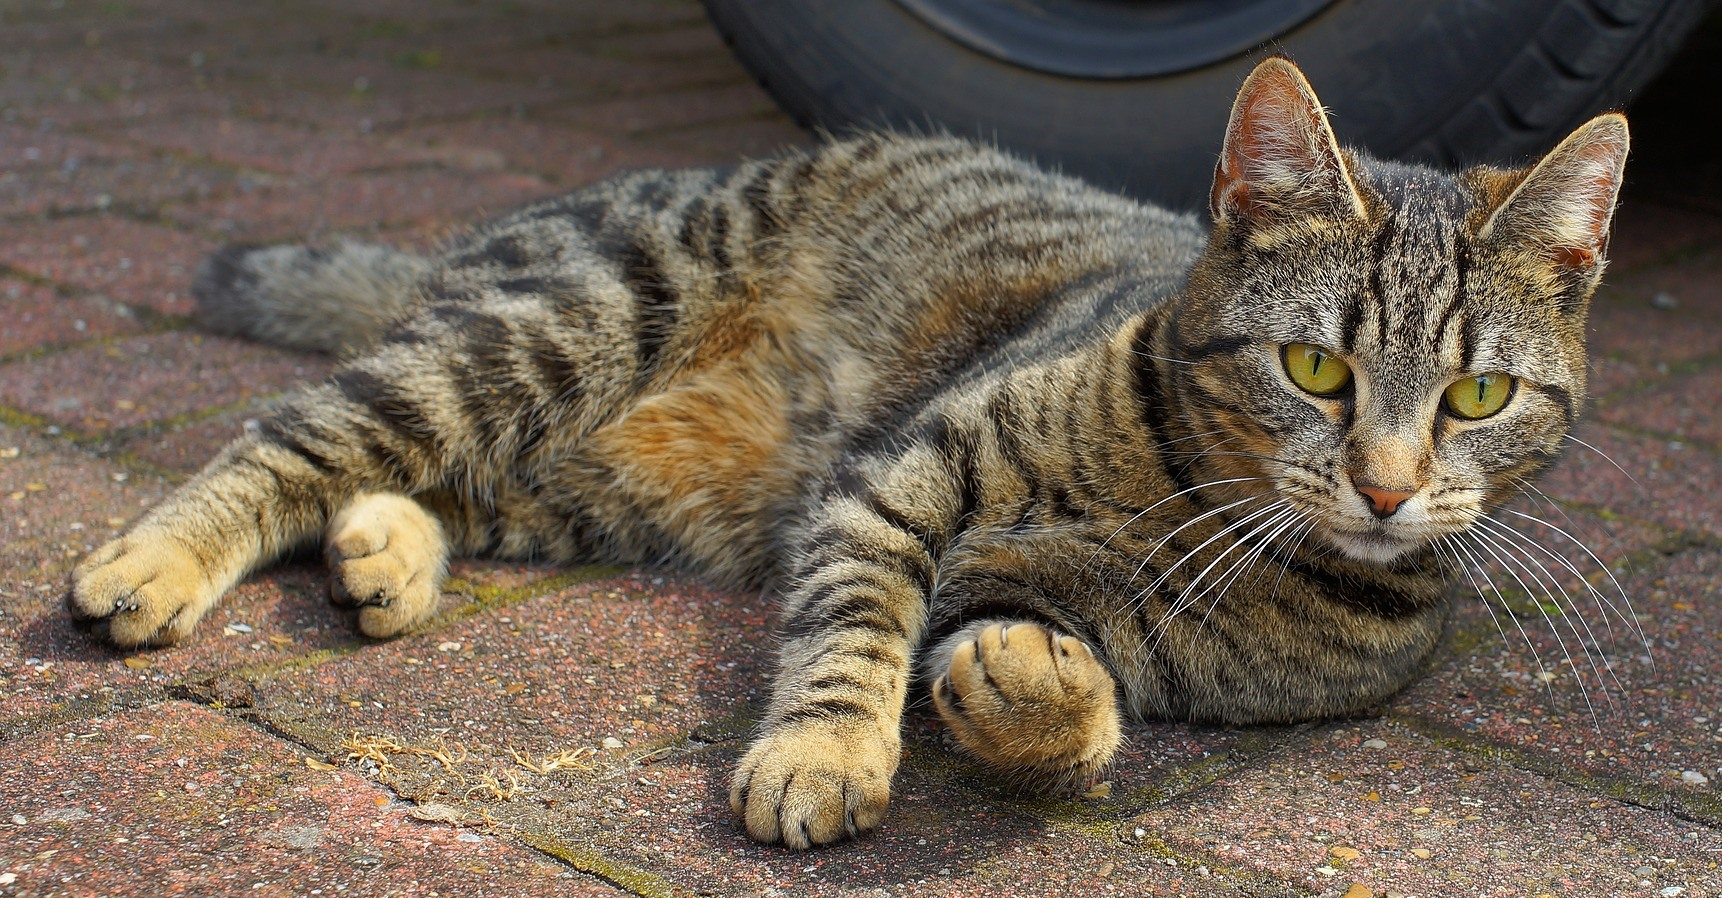 Can Diarrhea in a Cat Be Caused by Cancer?